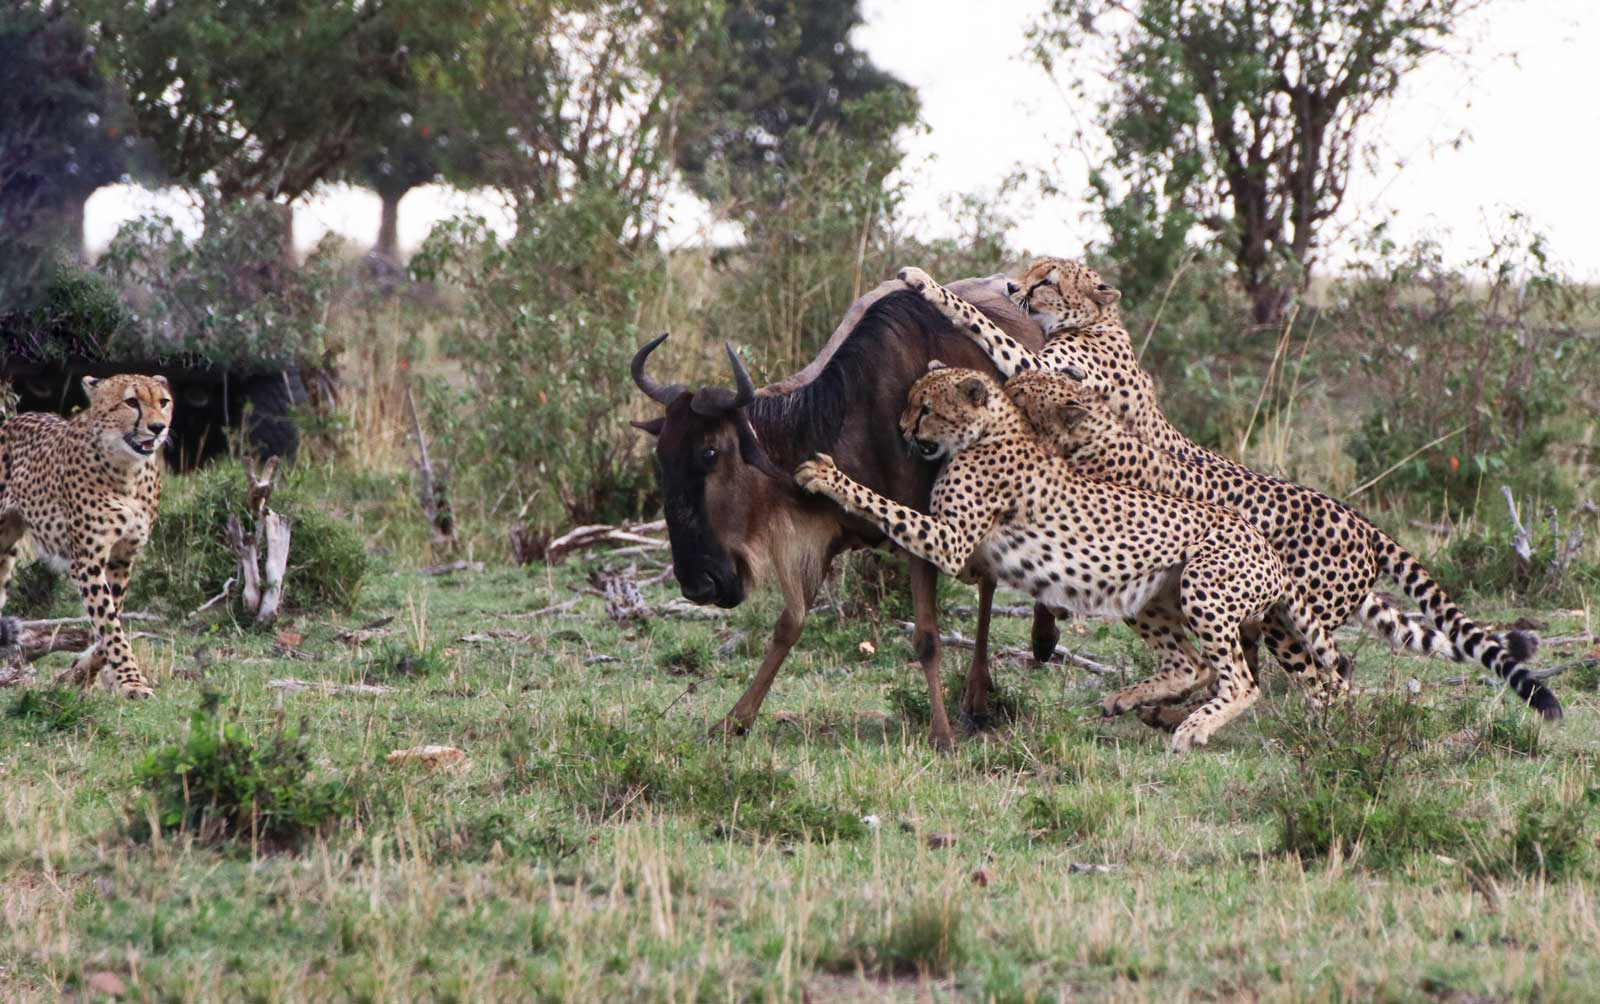 Five Cheetah Brothers Kill a Wildebeest in Masai Mara